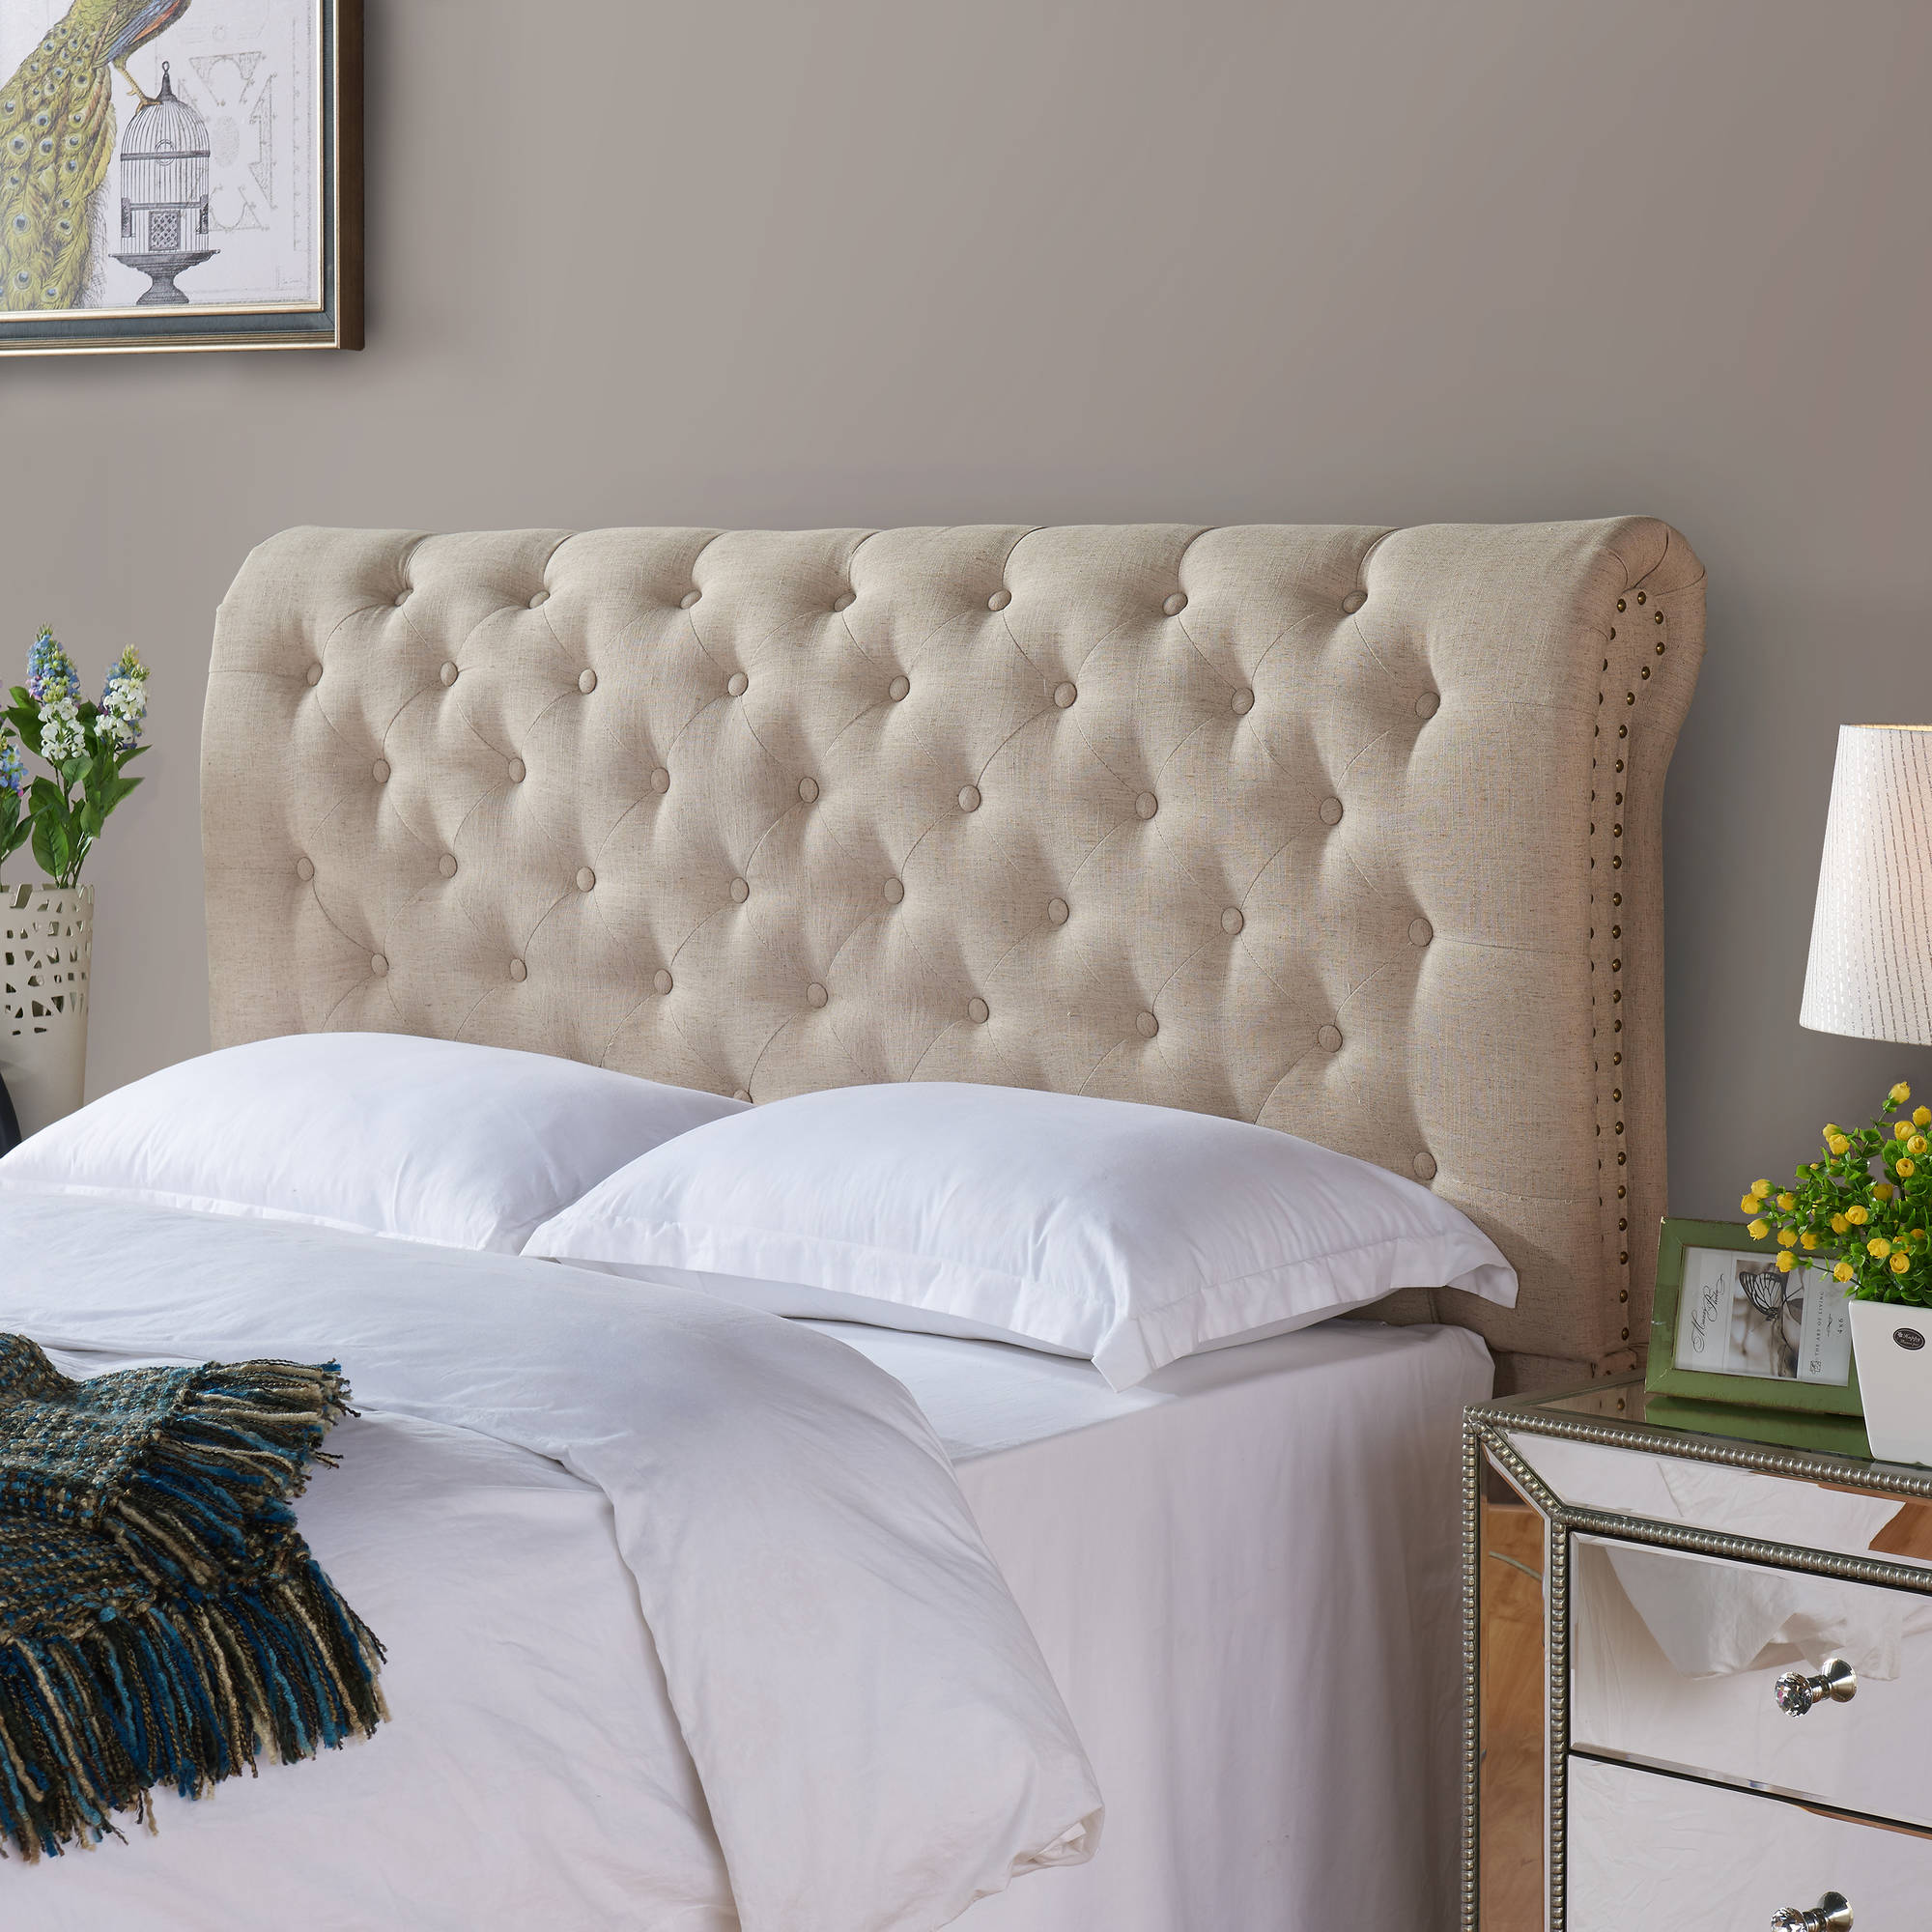 Better Homes and Gardens Rolled Tufted Upholstered Headboard, Sand, Multiple Sizes